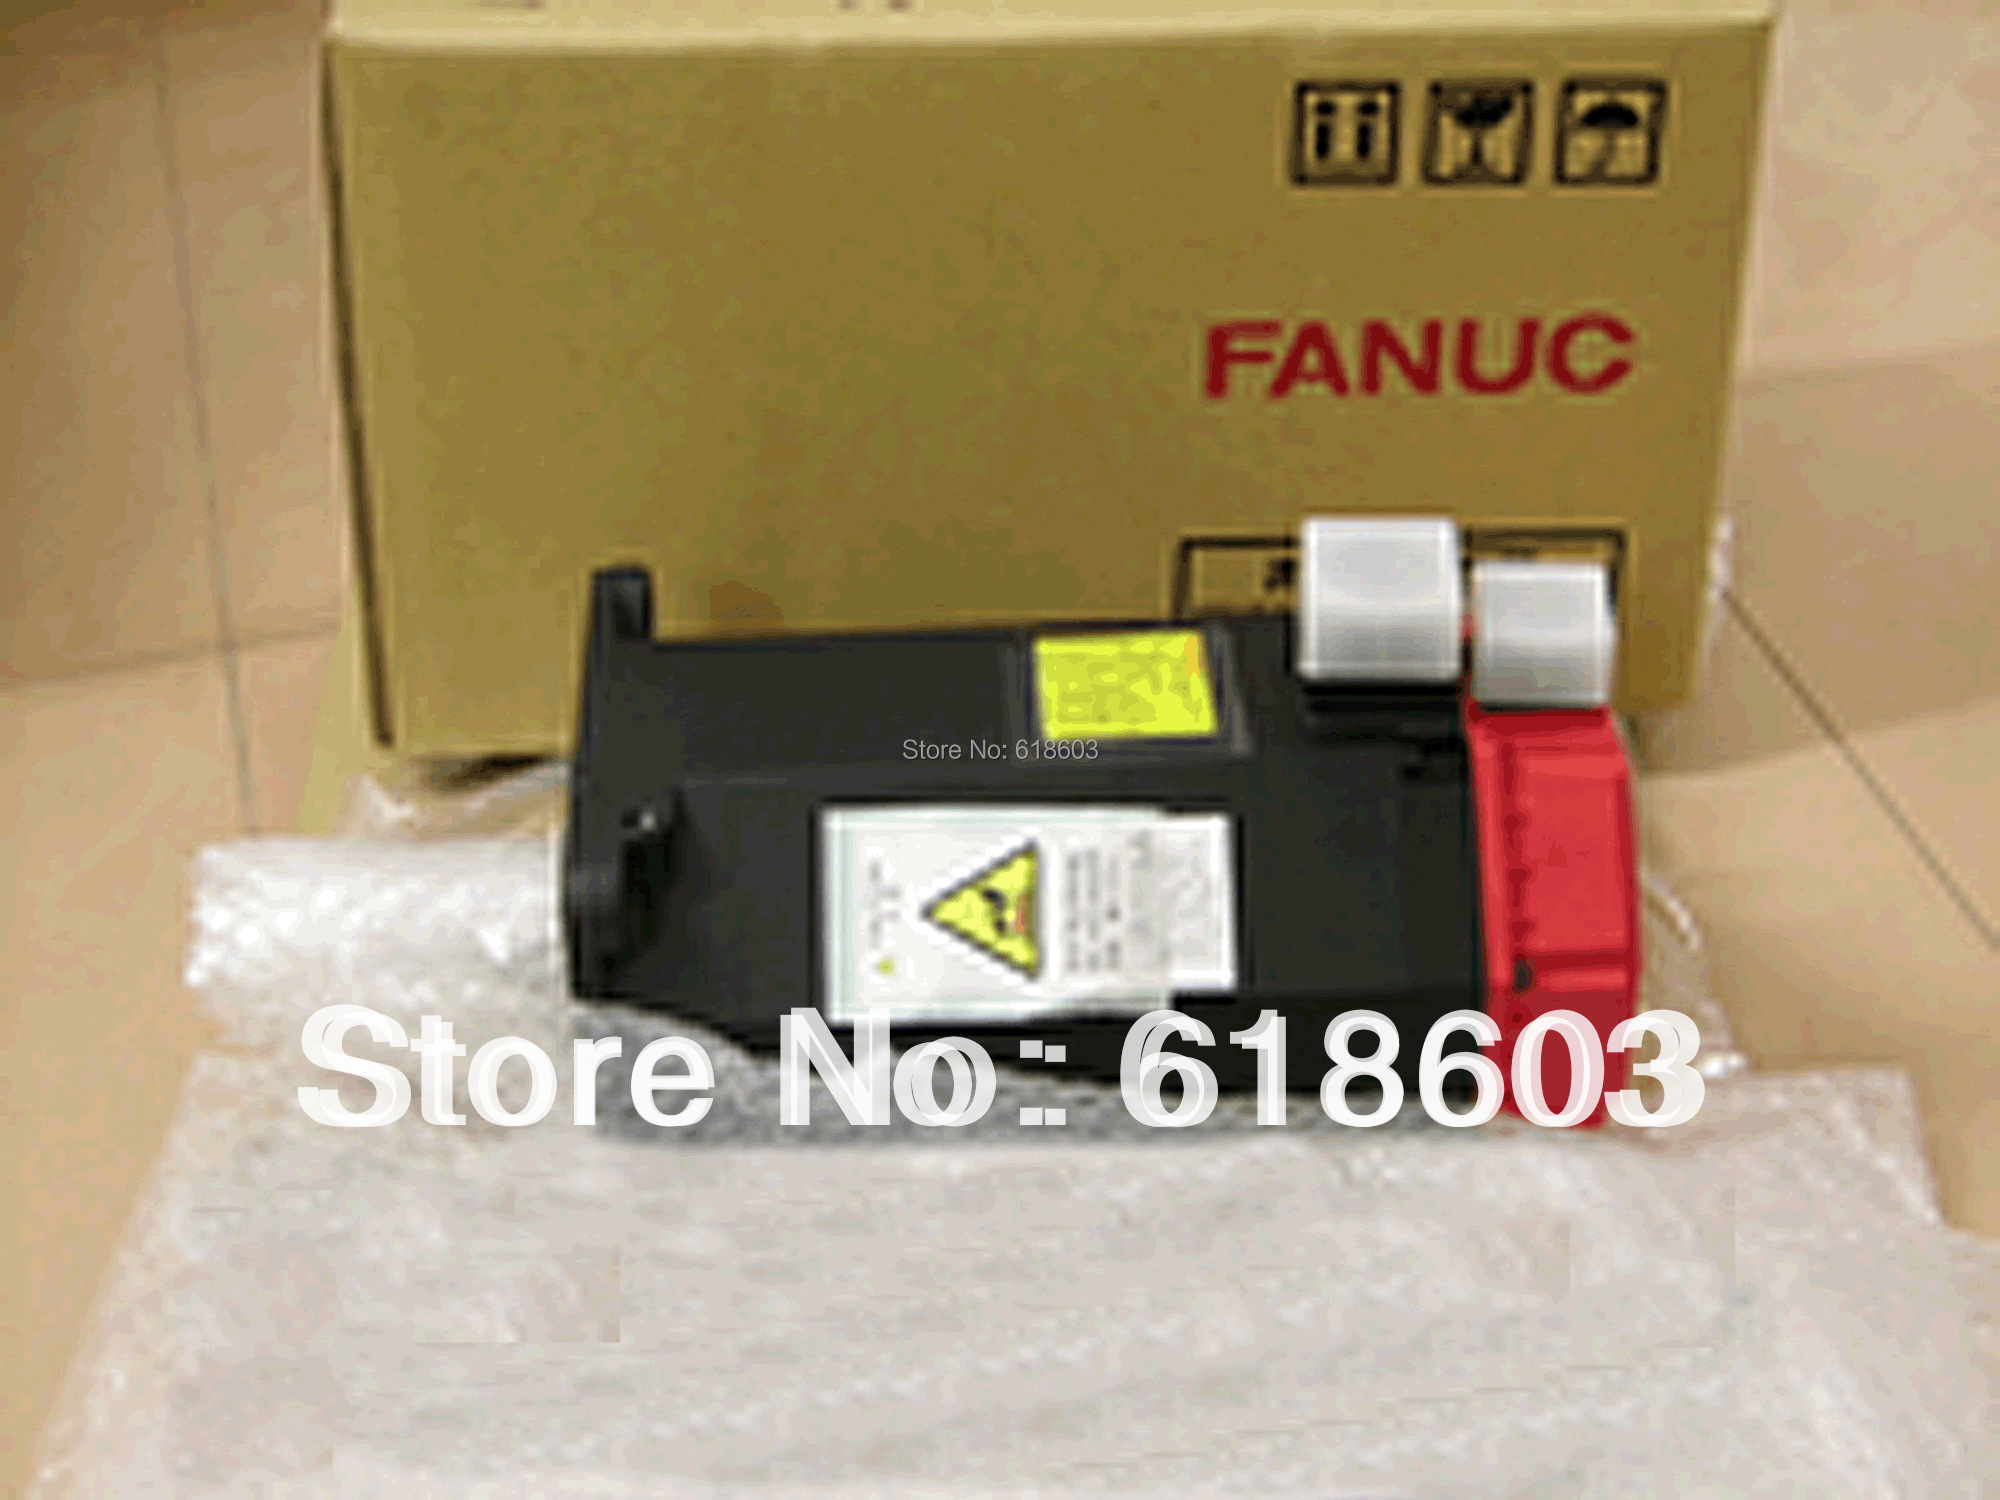 100% tested FANUC 100% new A06b-0227-b101 original   warranty for 1 year100% tested FANUC 100% new A06b-0227-b101 original   warranty for 1 year